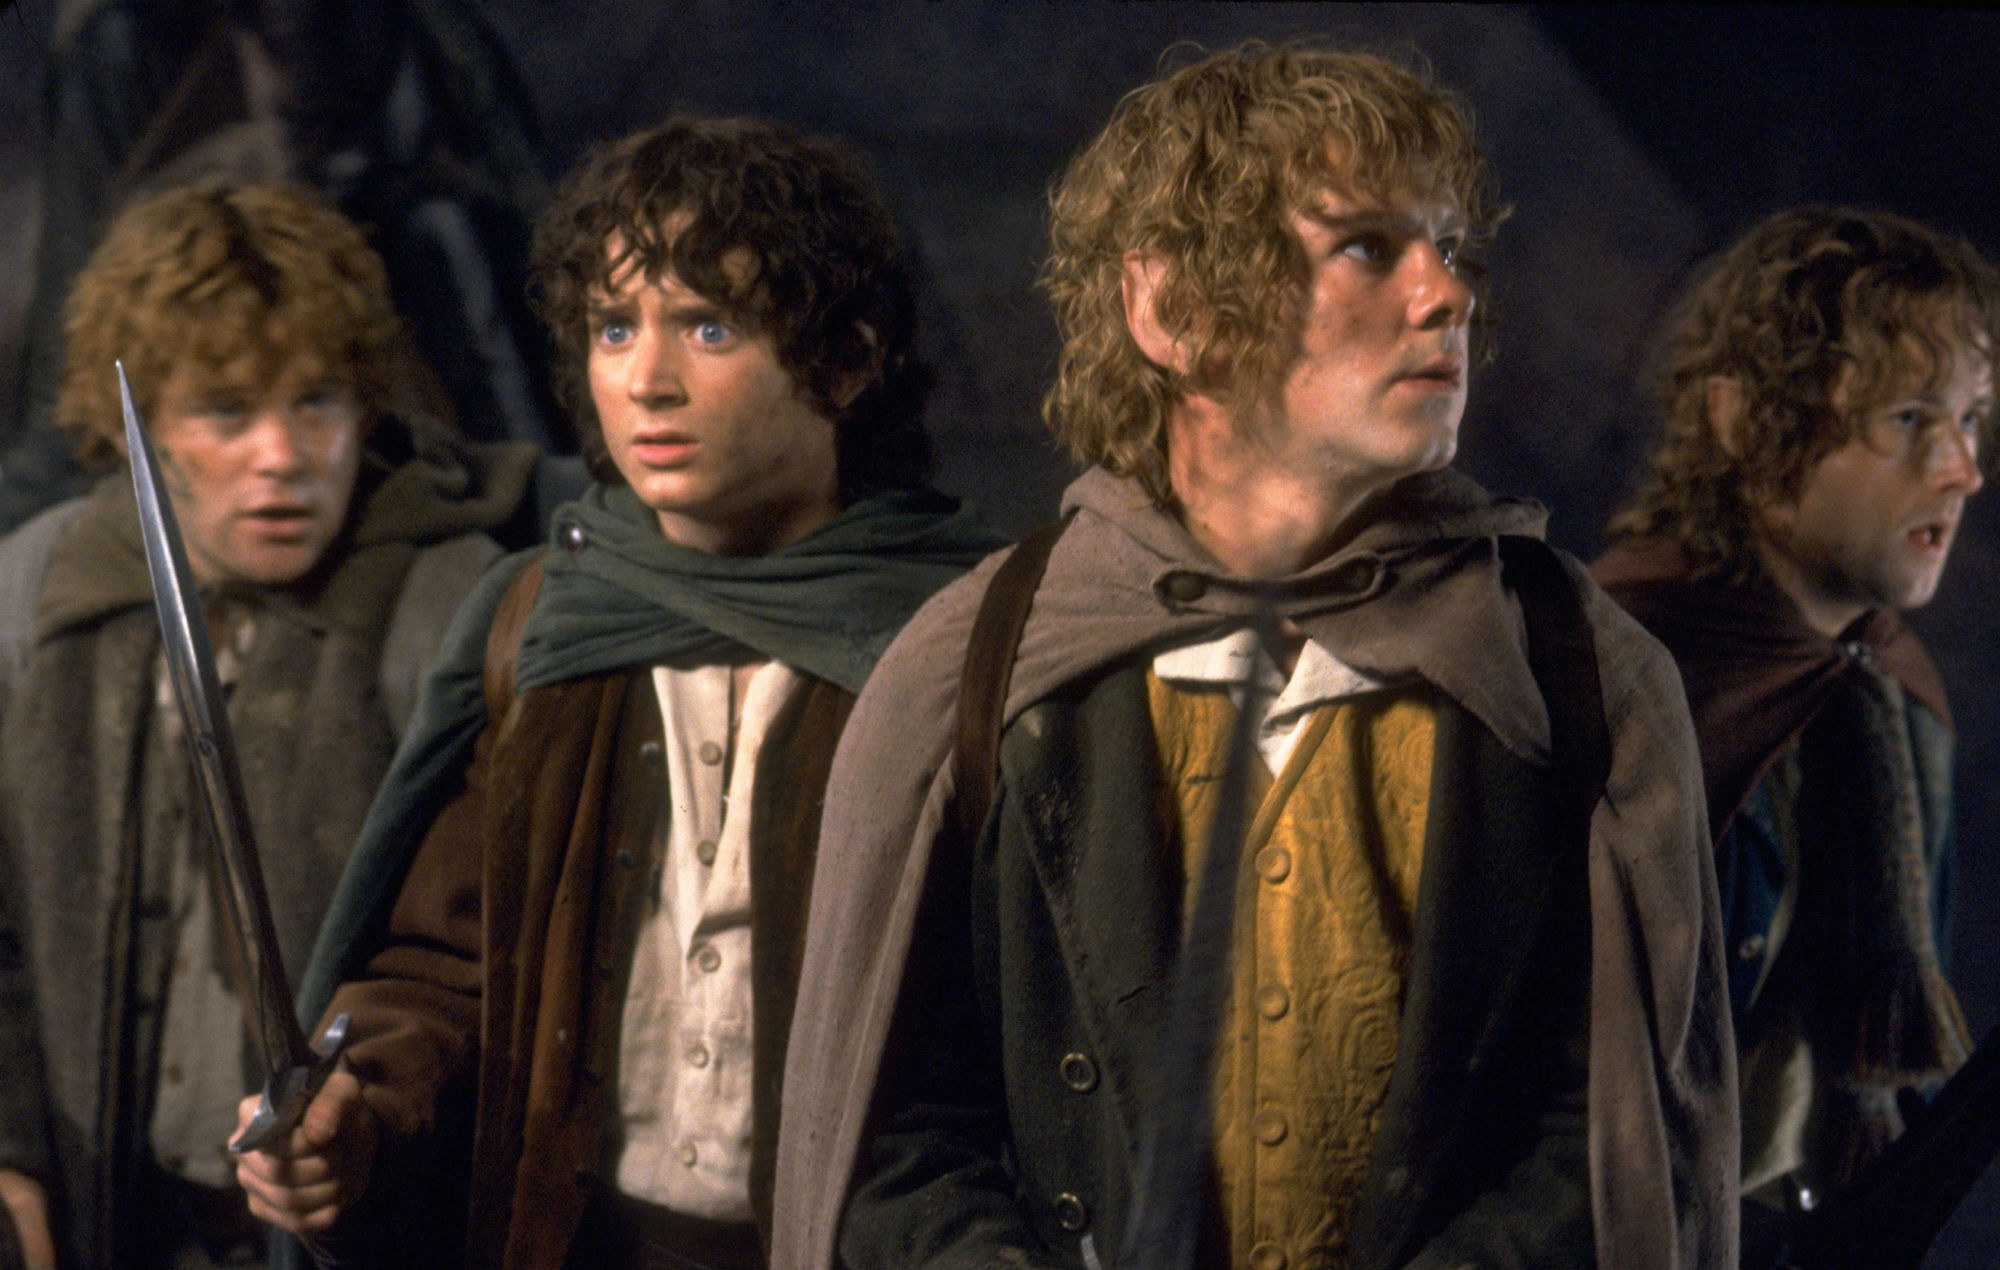 The Hobbits — Sam, Frodo, Merry and Pippin